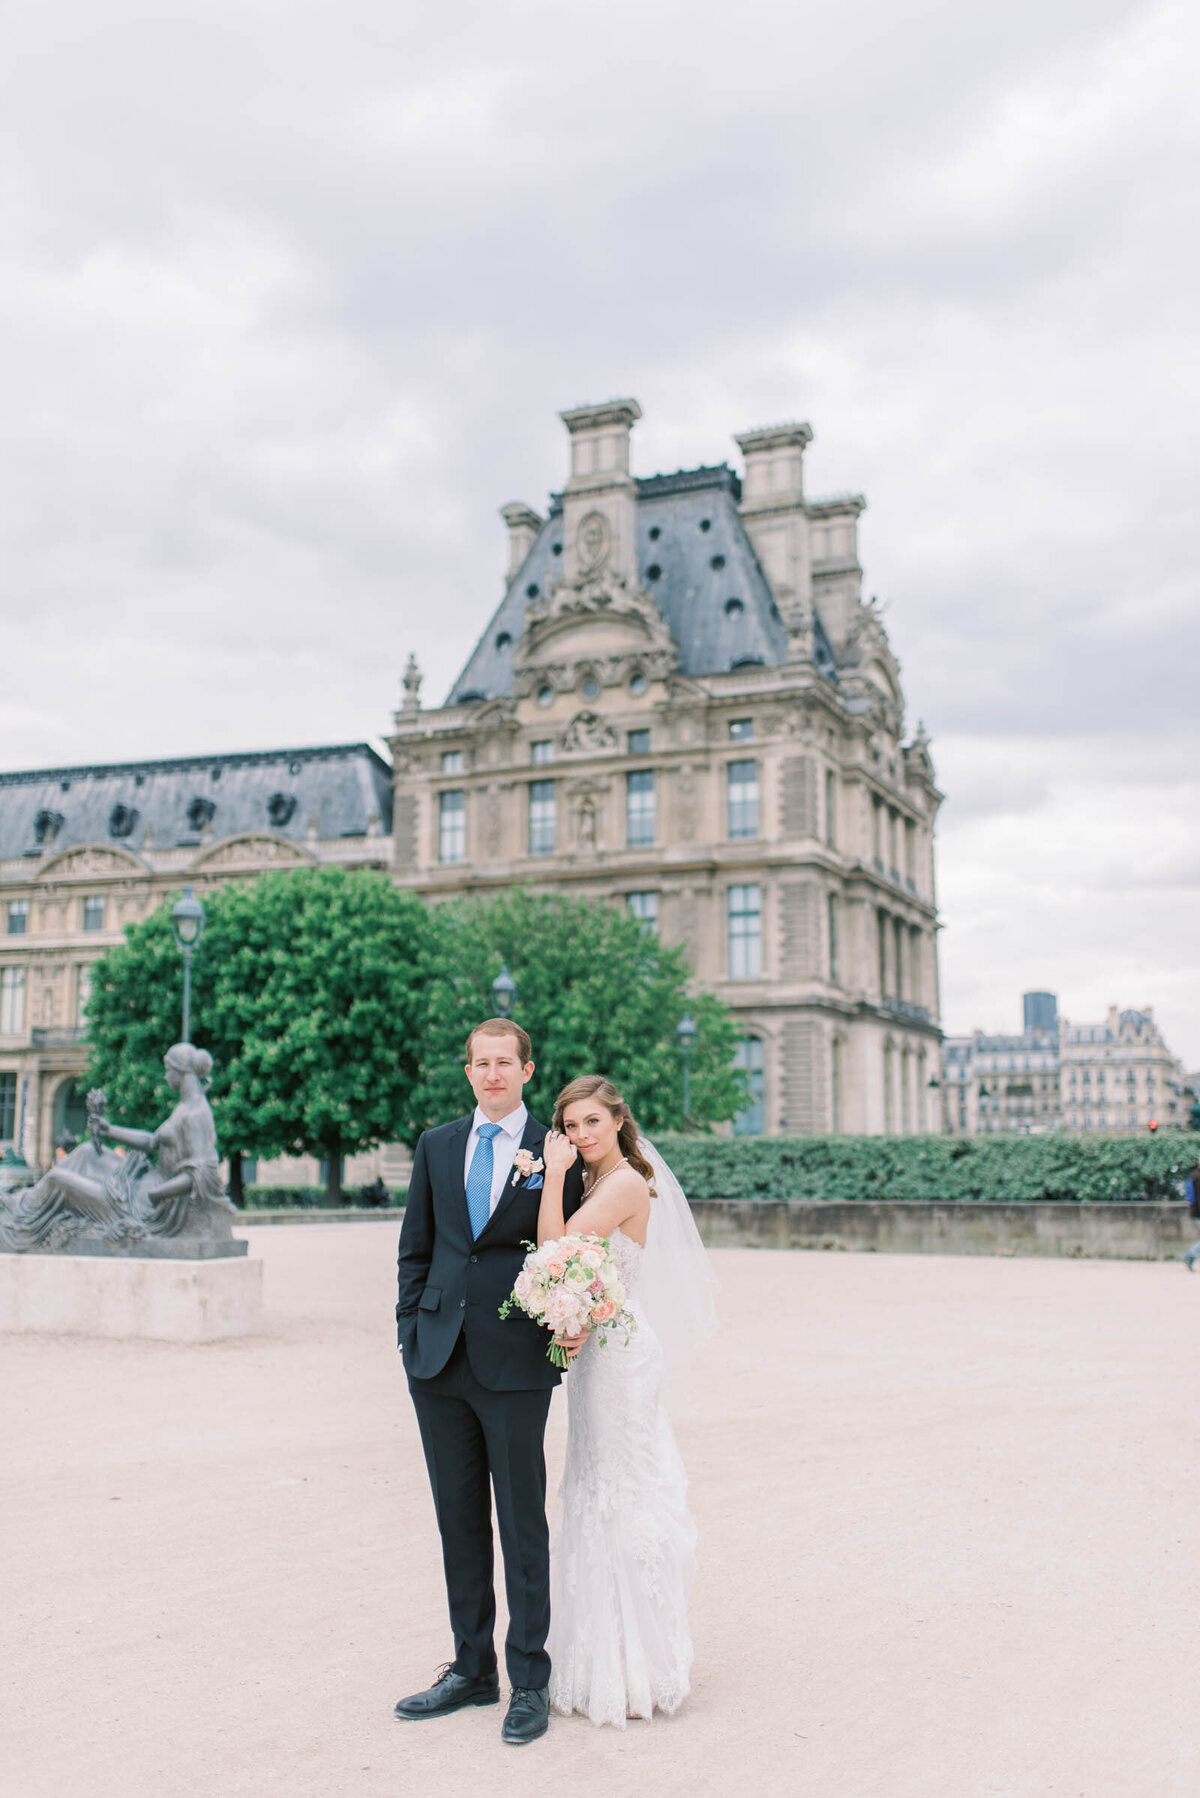 marcelaploskerphotography-paris_wedding-57